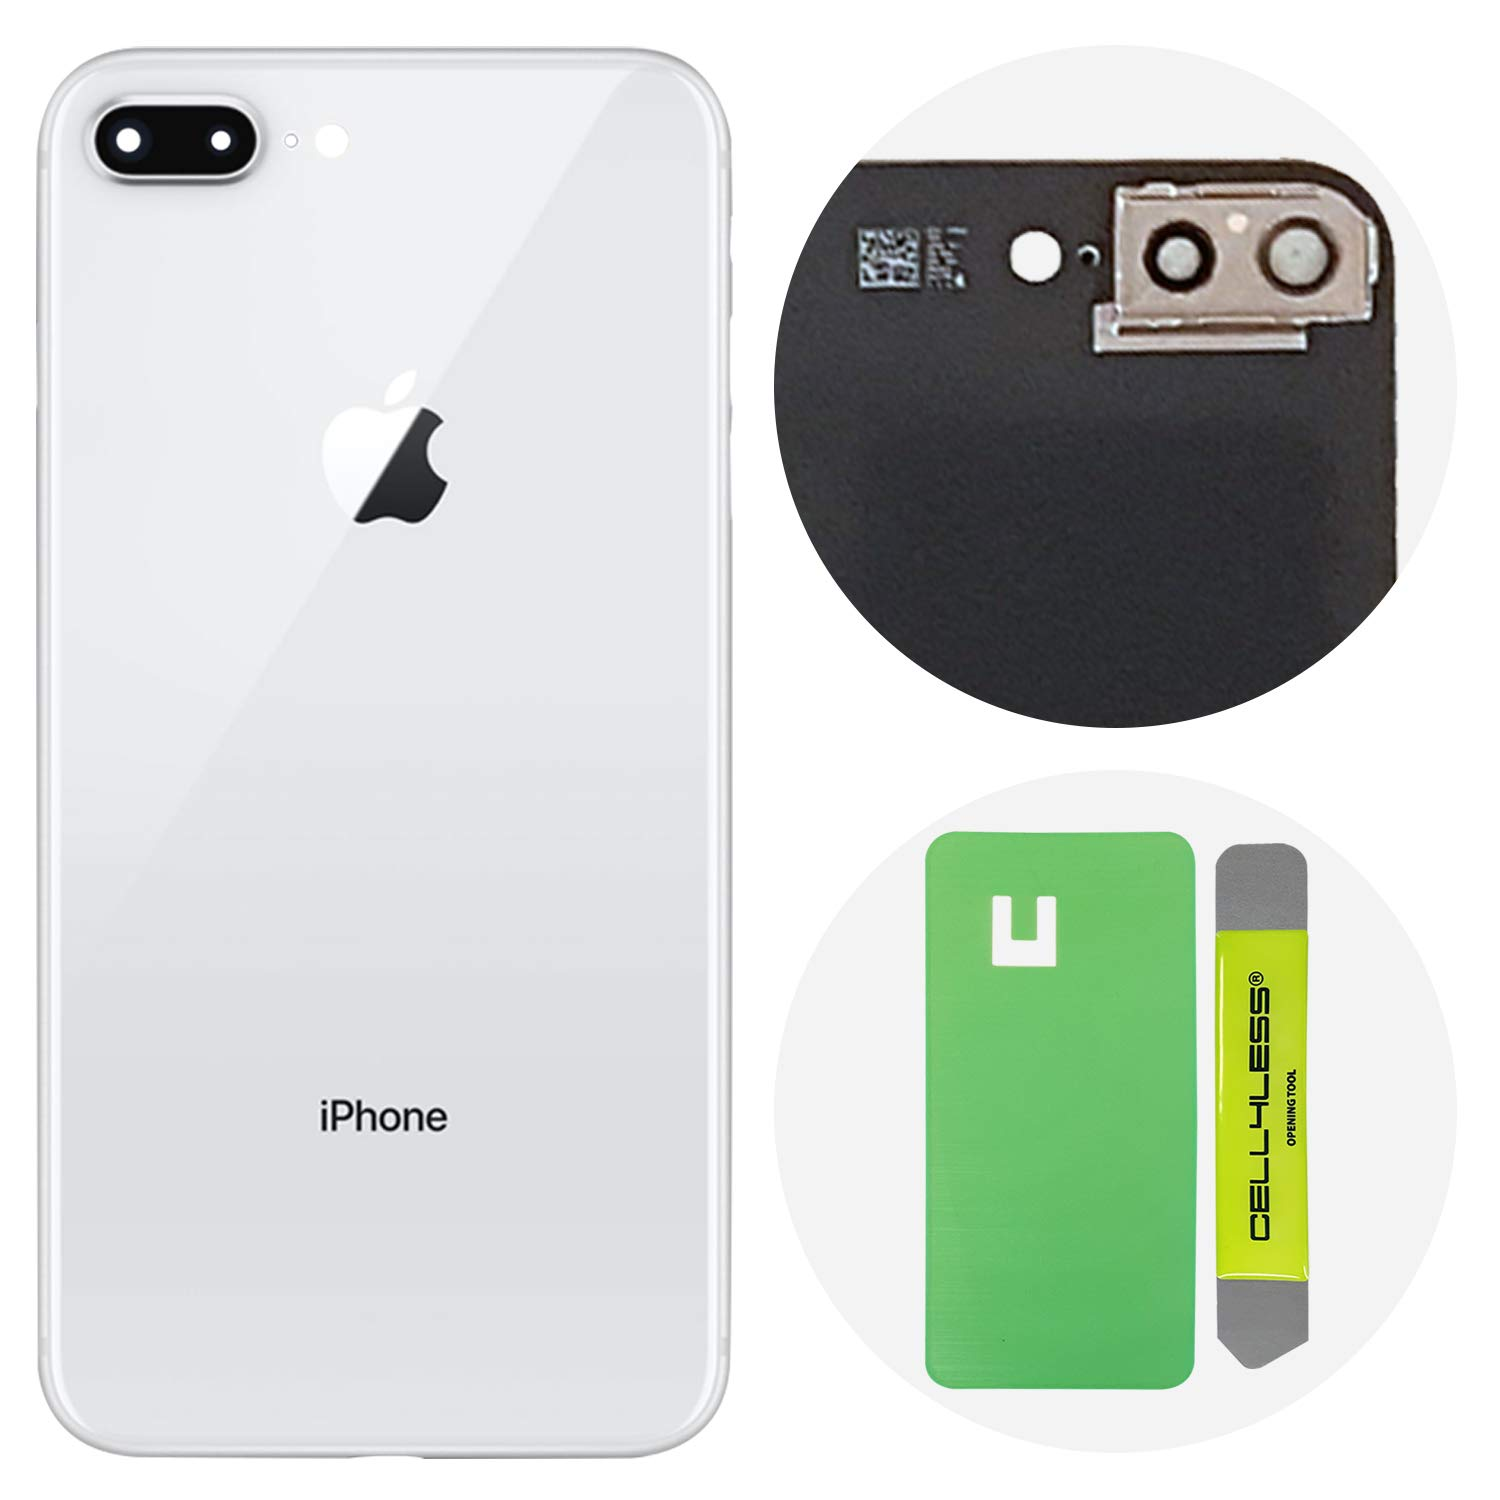 Cell4less Back Glass Cover OEM Battery Door Replacement w/Adhesive, Installed Camera Frame w/Lens & Removal Tool for Apple iPhone 8 Plus (Silver 8+)